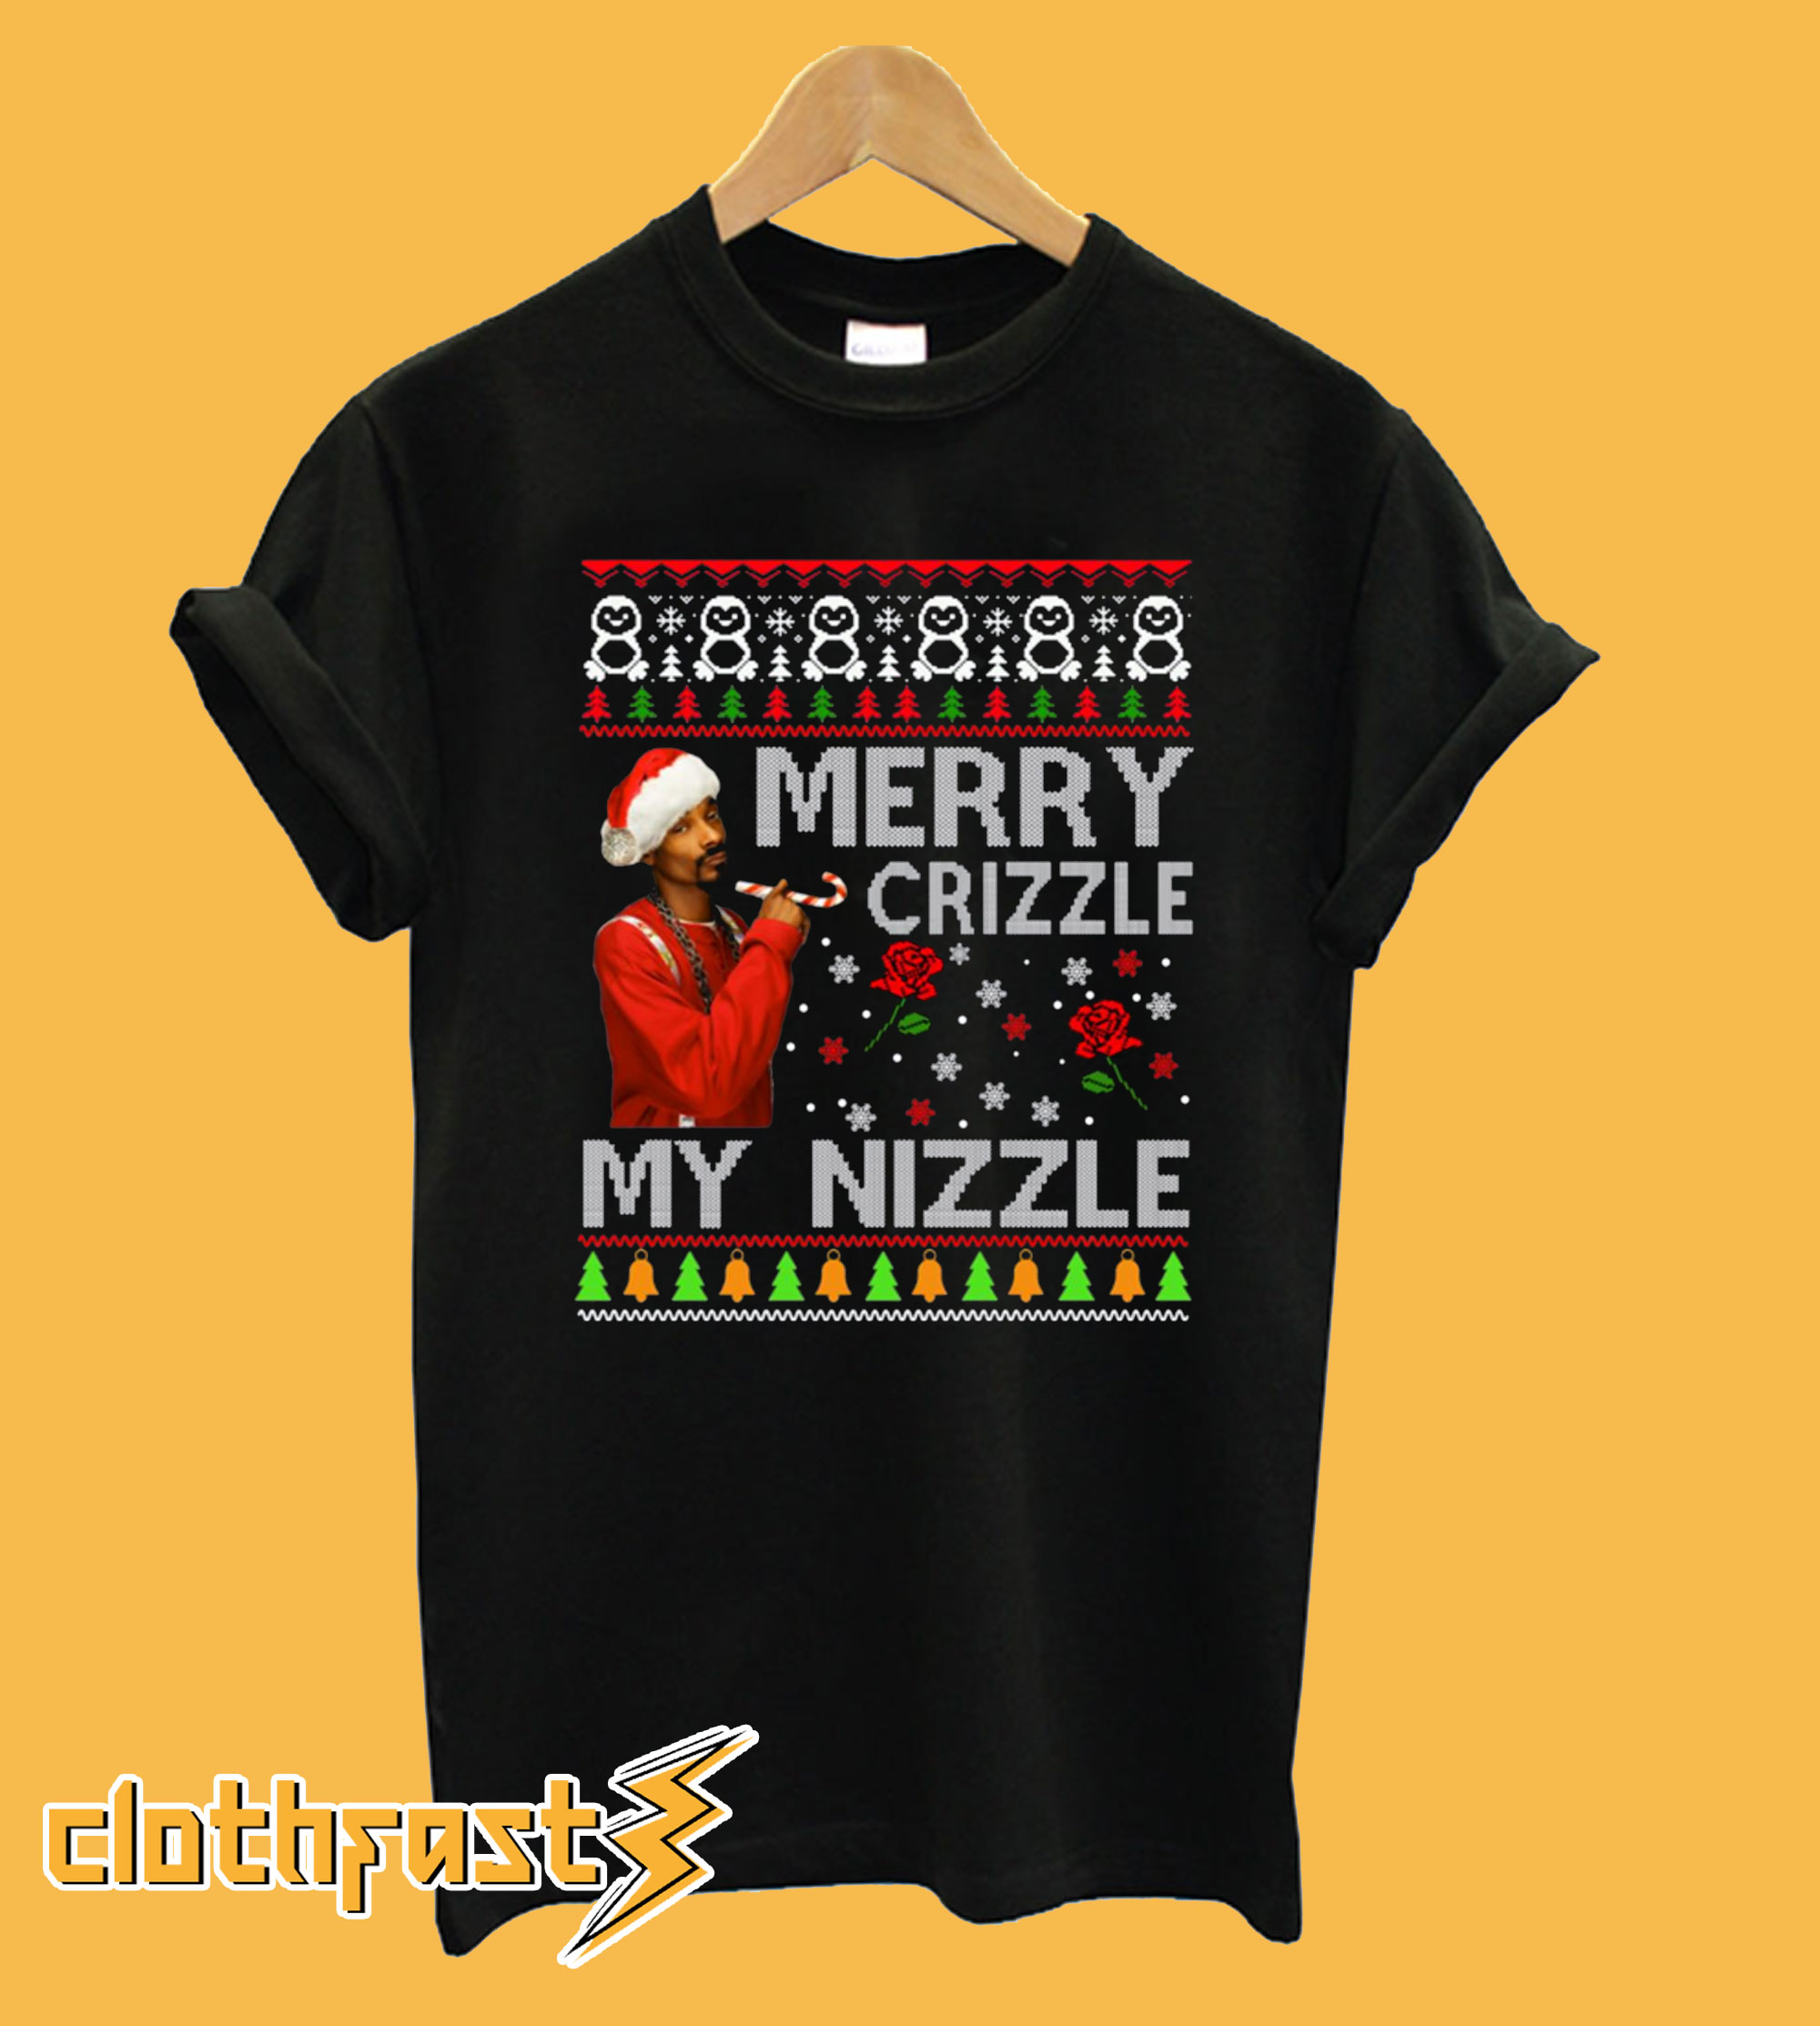 Merry Crizzle Funny Snoop Dogg Christmas T-Shirt